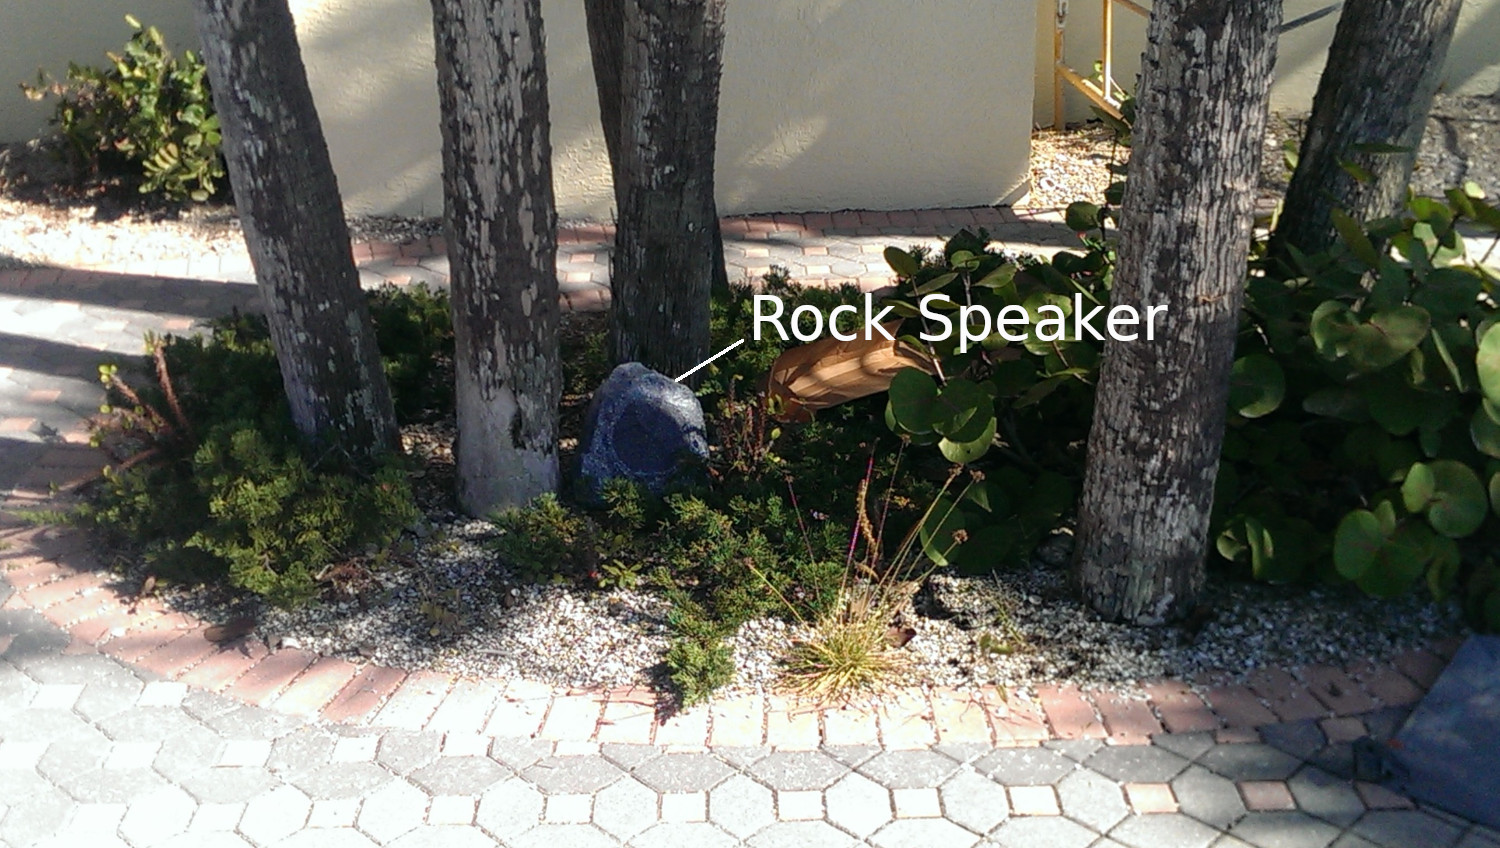 Rock Speaker by Rear Deck